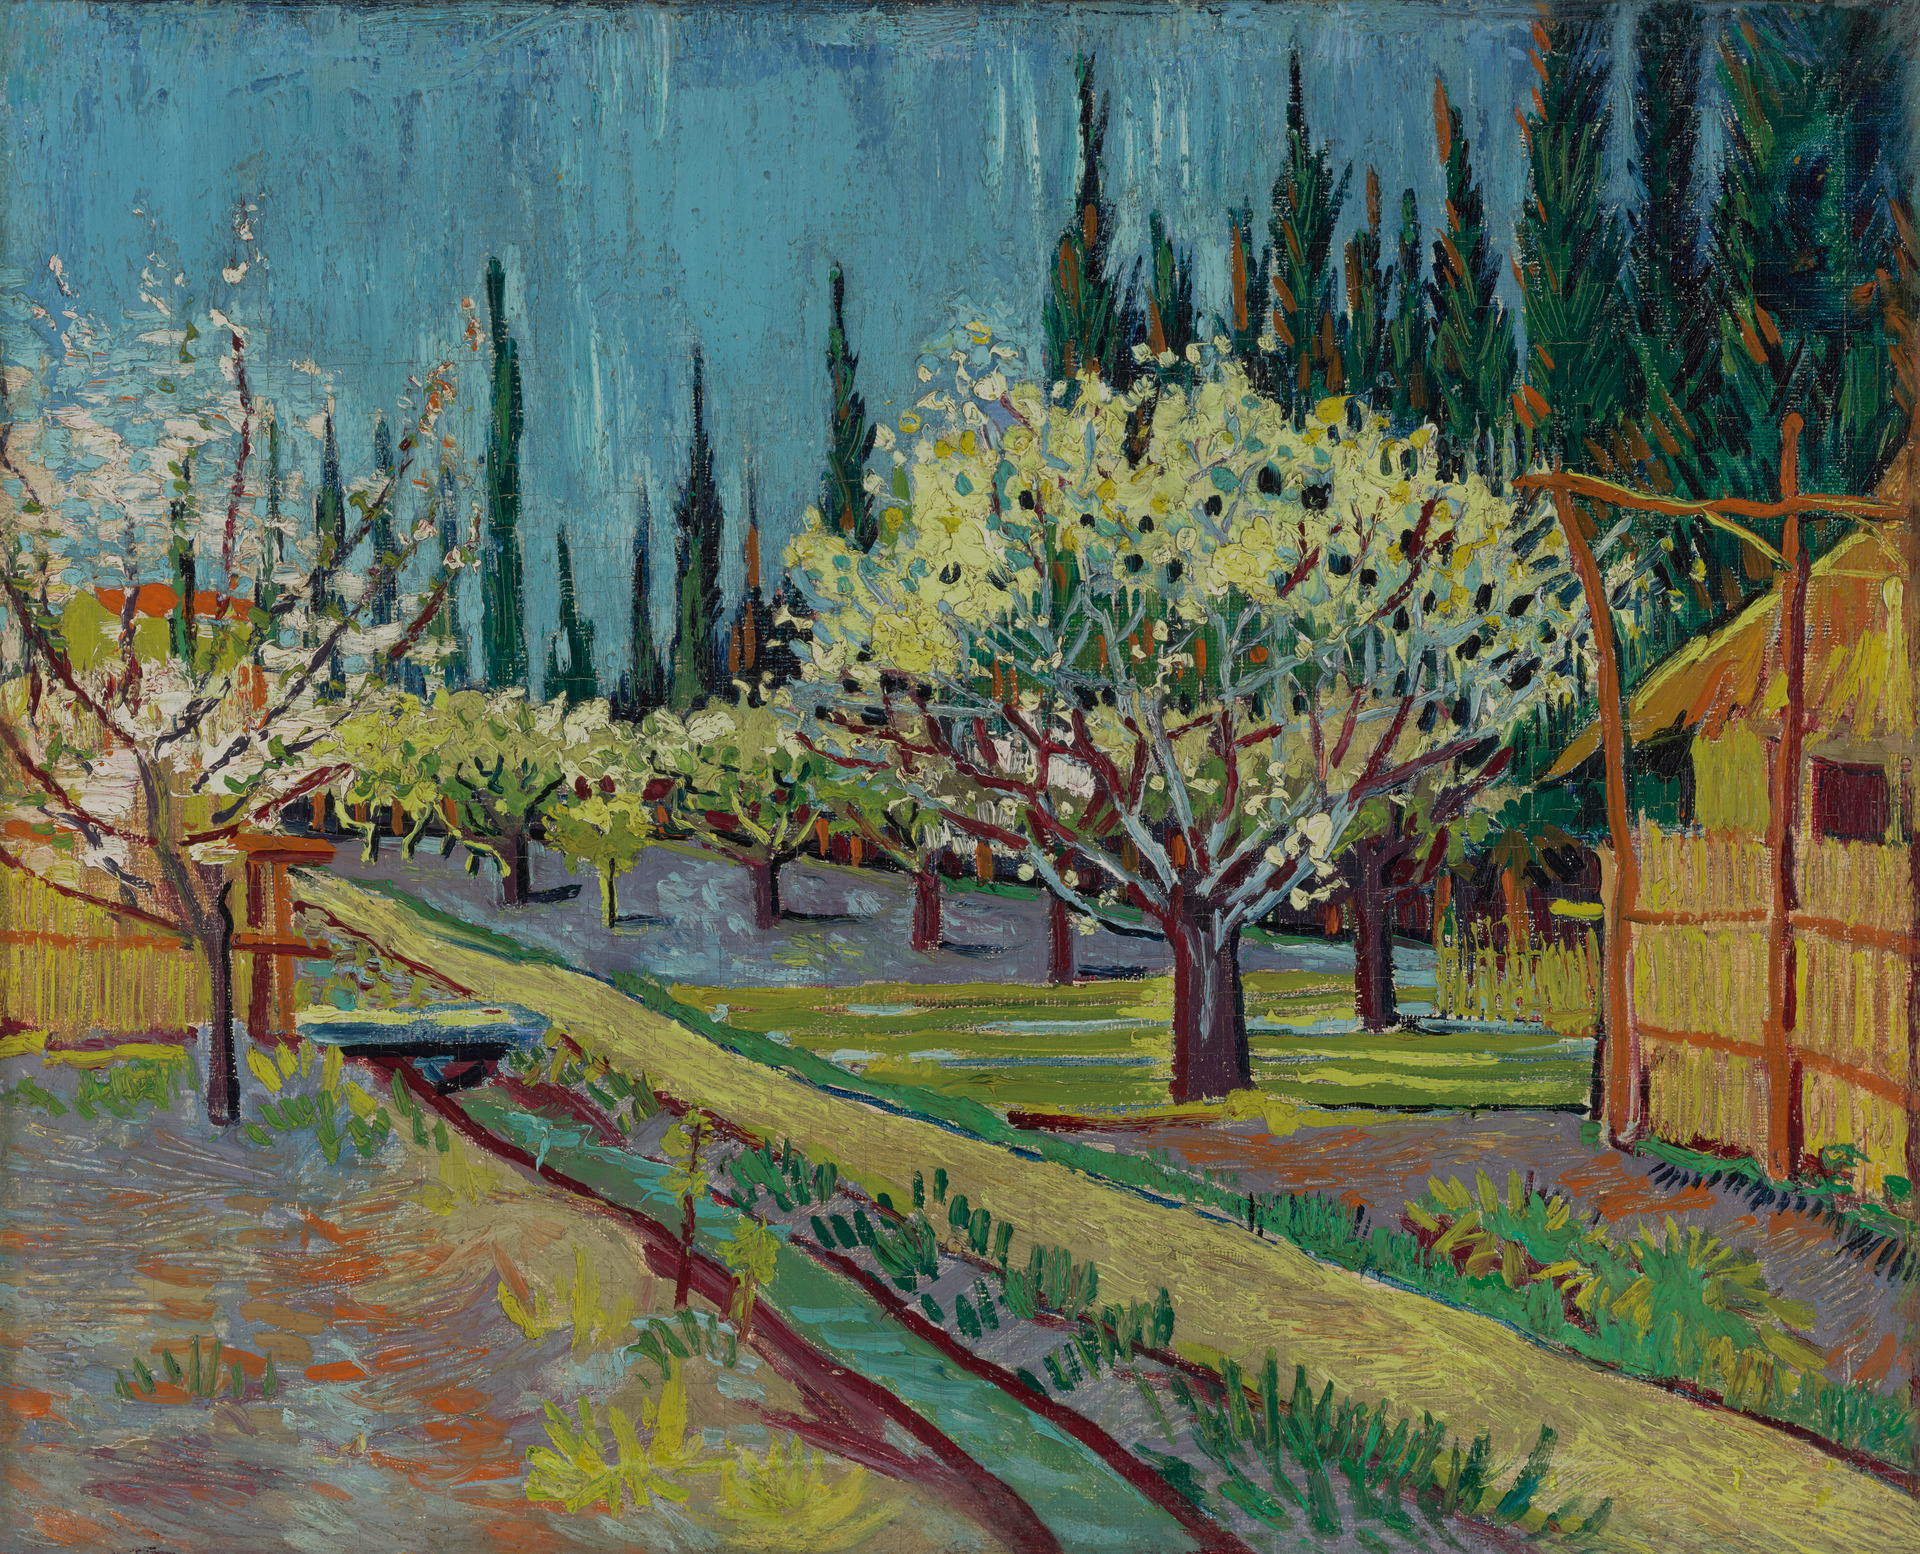 Van-Gogh-1888-Orchard-Bordered-by-Cypresses-Yale-University-Art-Gallery.